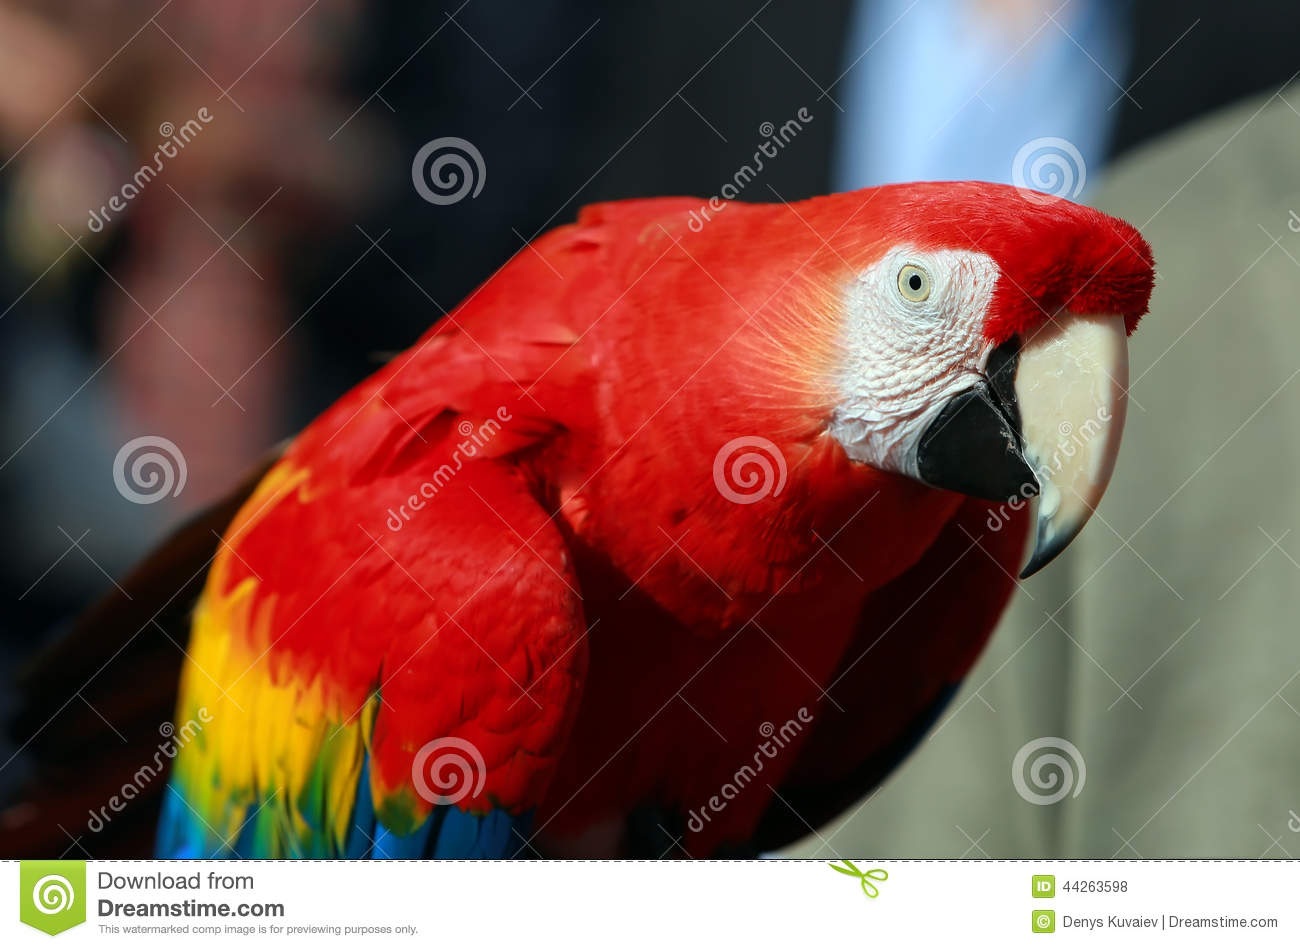 Macaw parrot red - photo#17